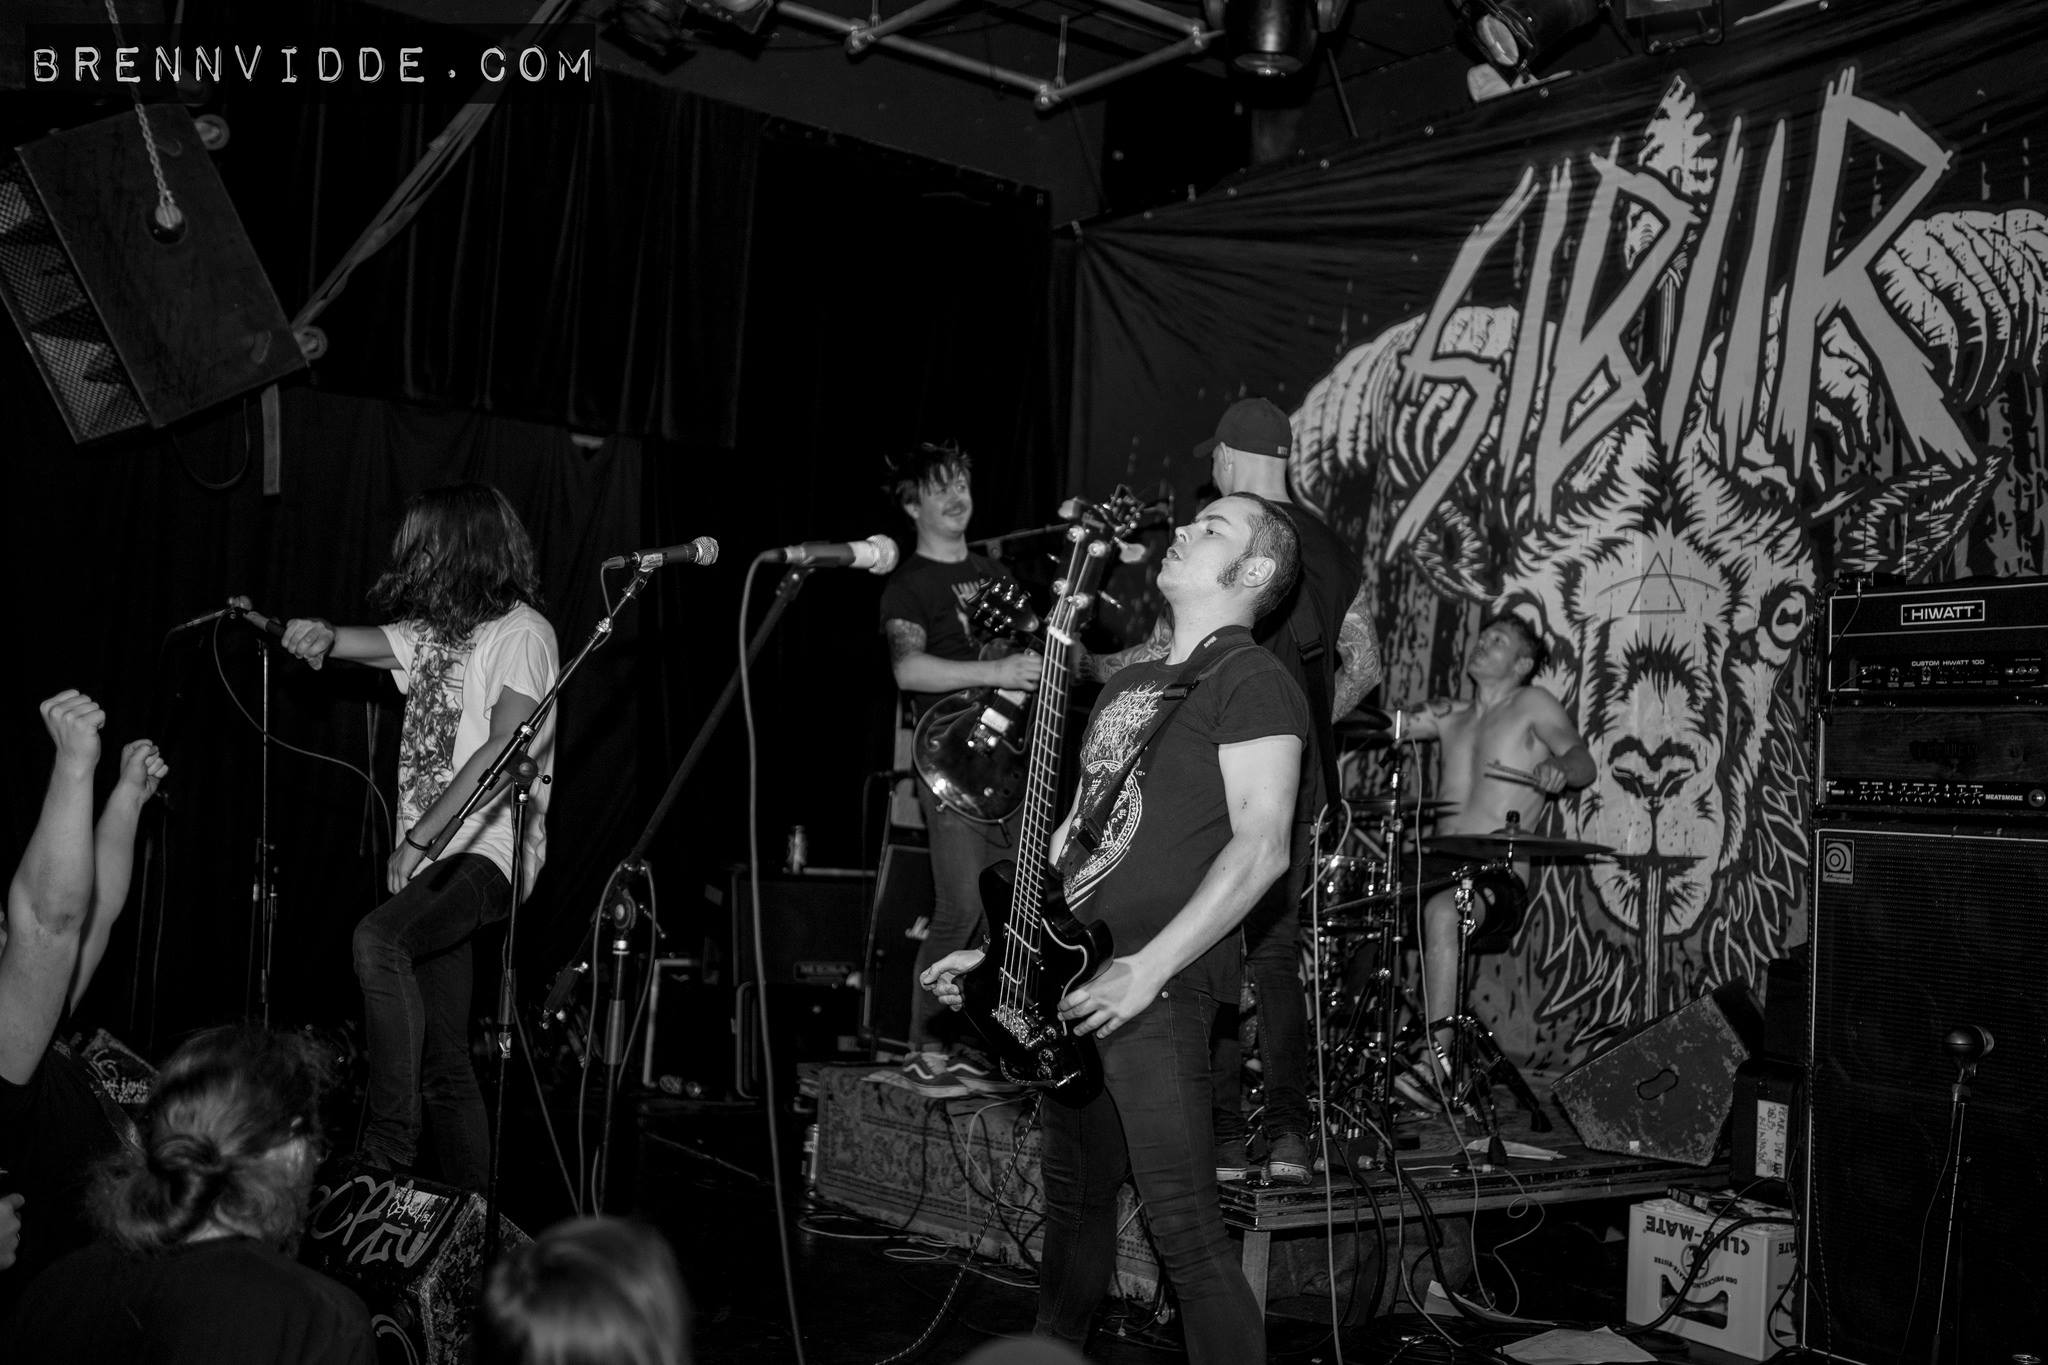 Sibiir  have a reputation for putting on great shows. Check their website to see if they are coming to a town near you!  Photo:  Brennviddefoto